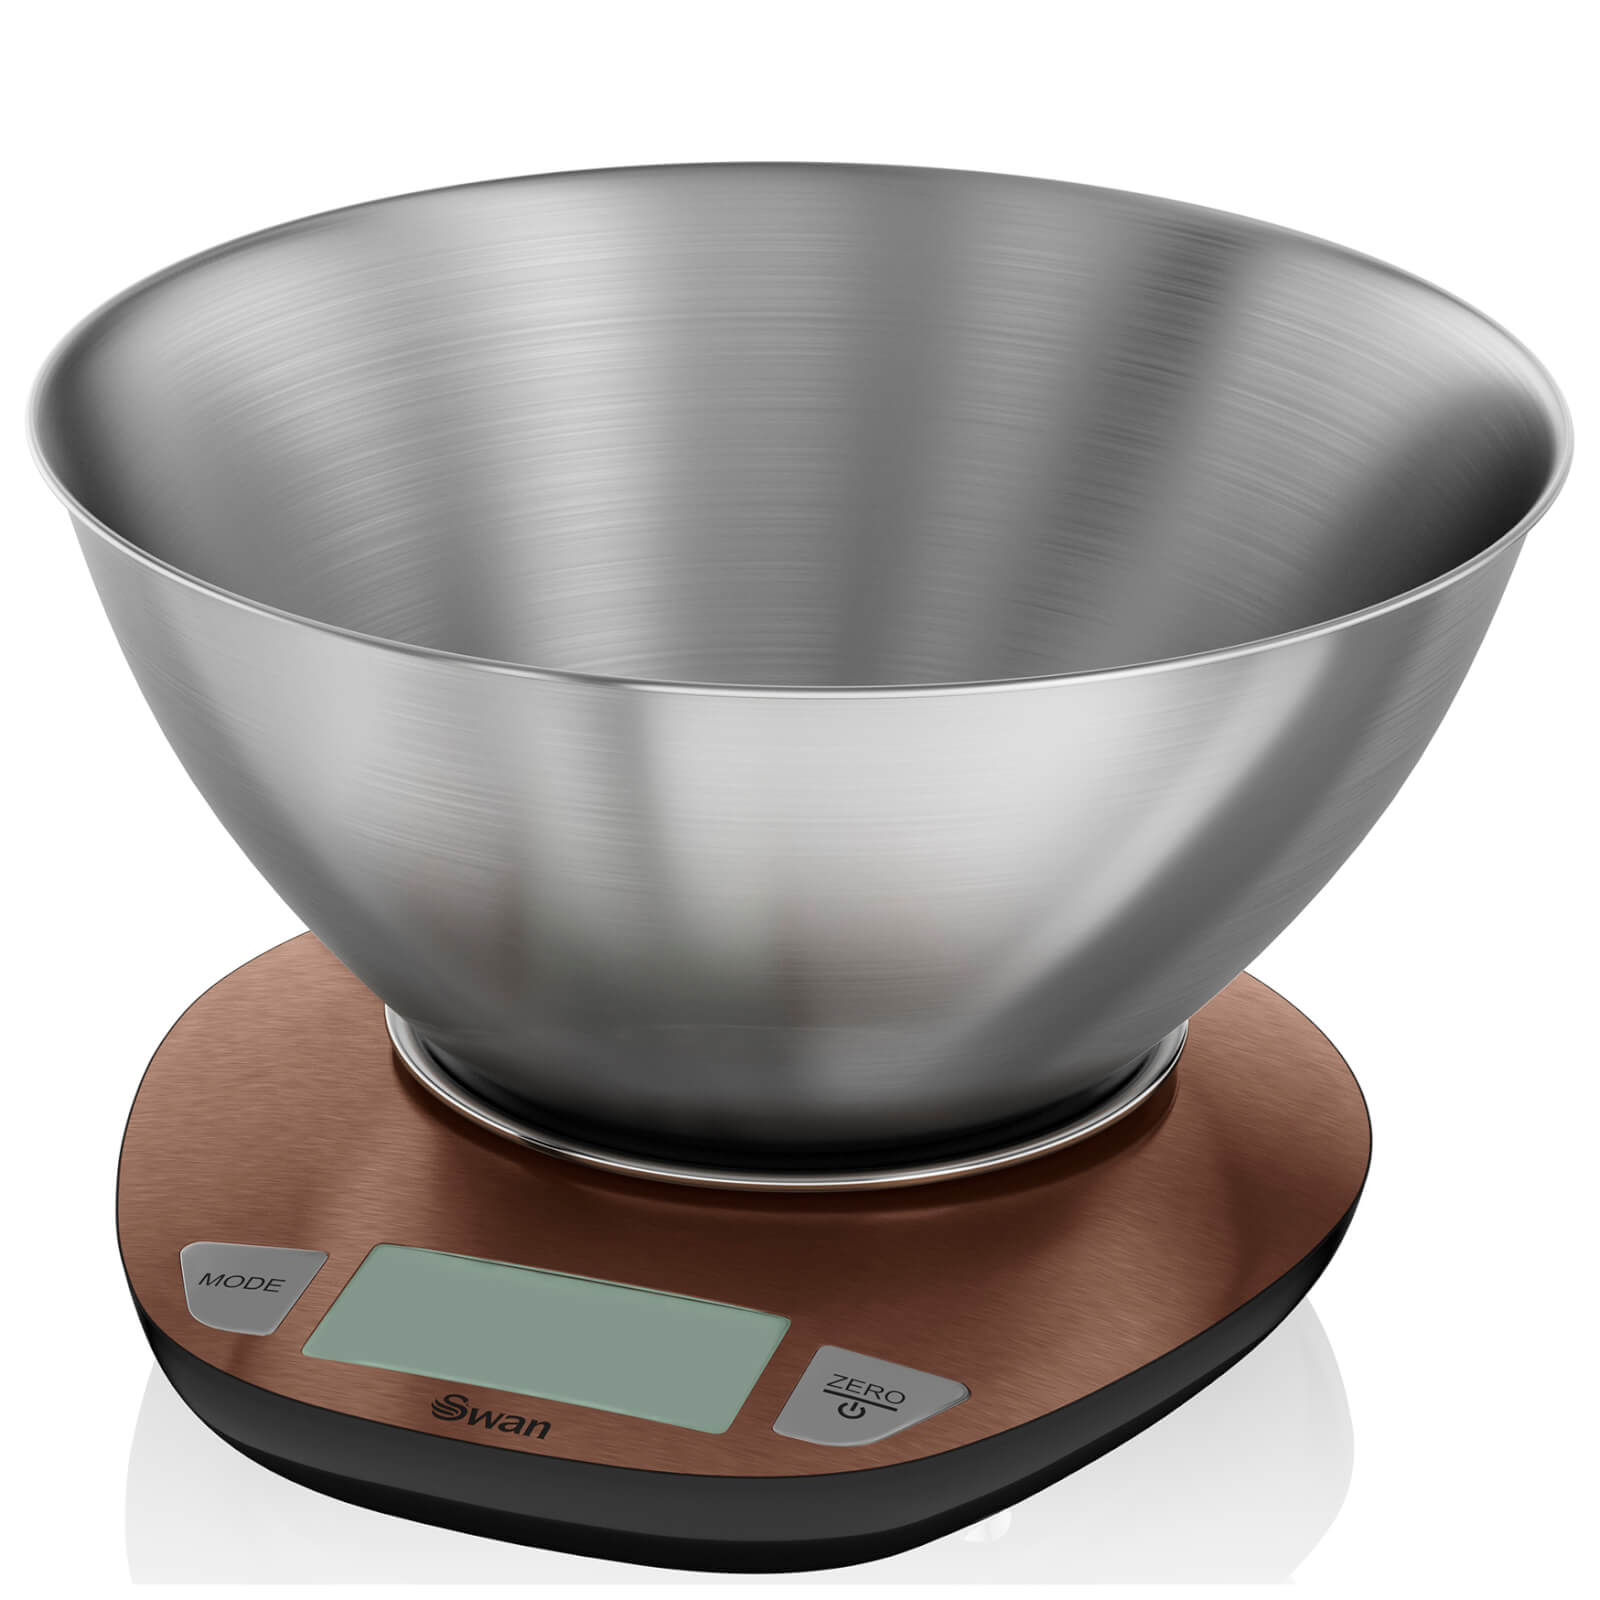 Swan Electronic Kitchen Scale with Bowl - Copper